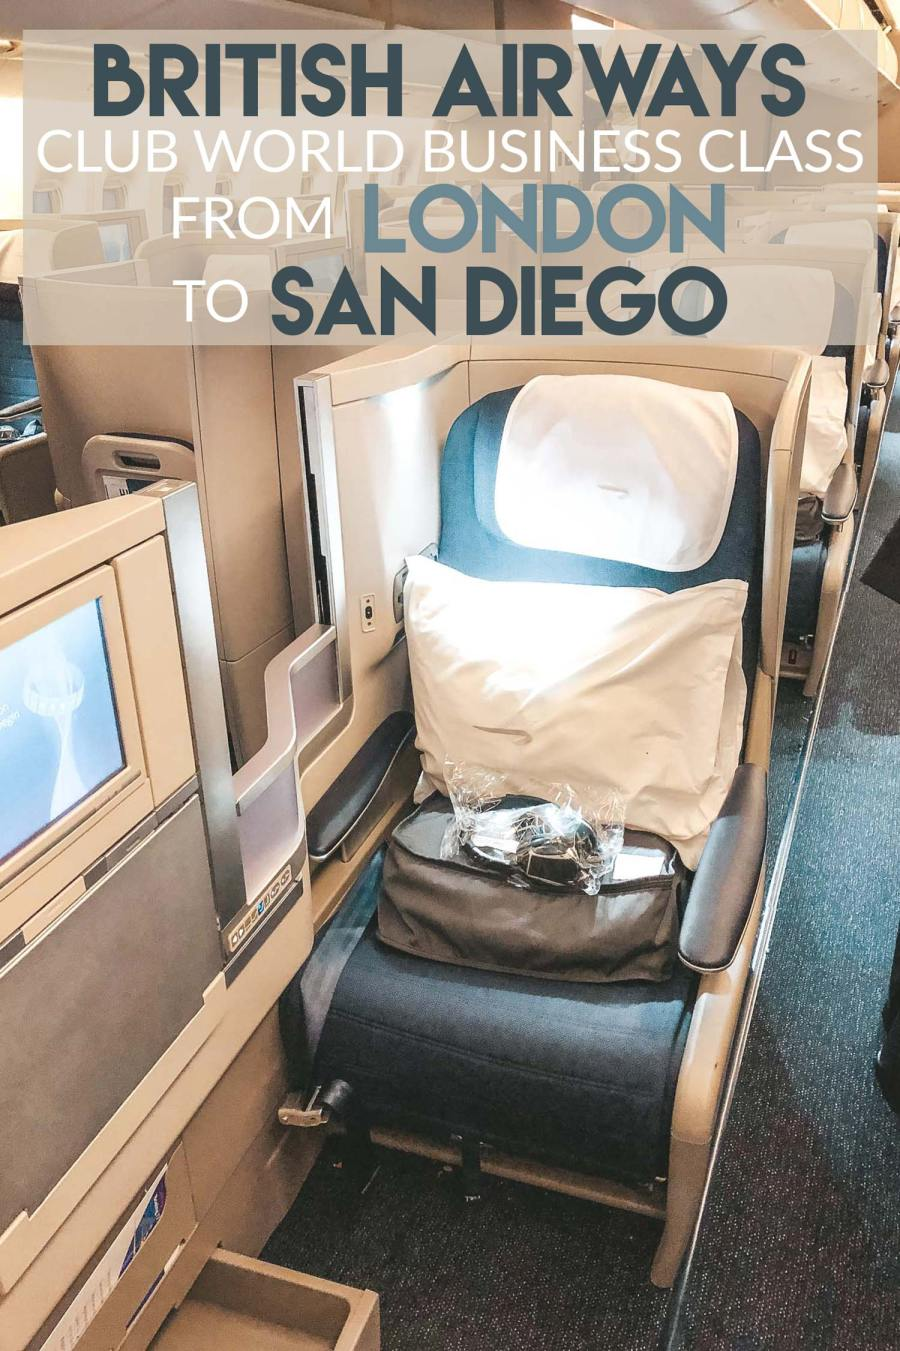 British Airways Club World Business Class from London to San Diego